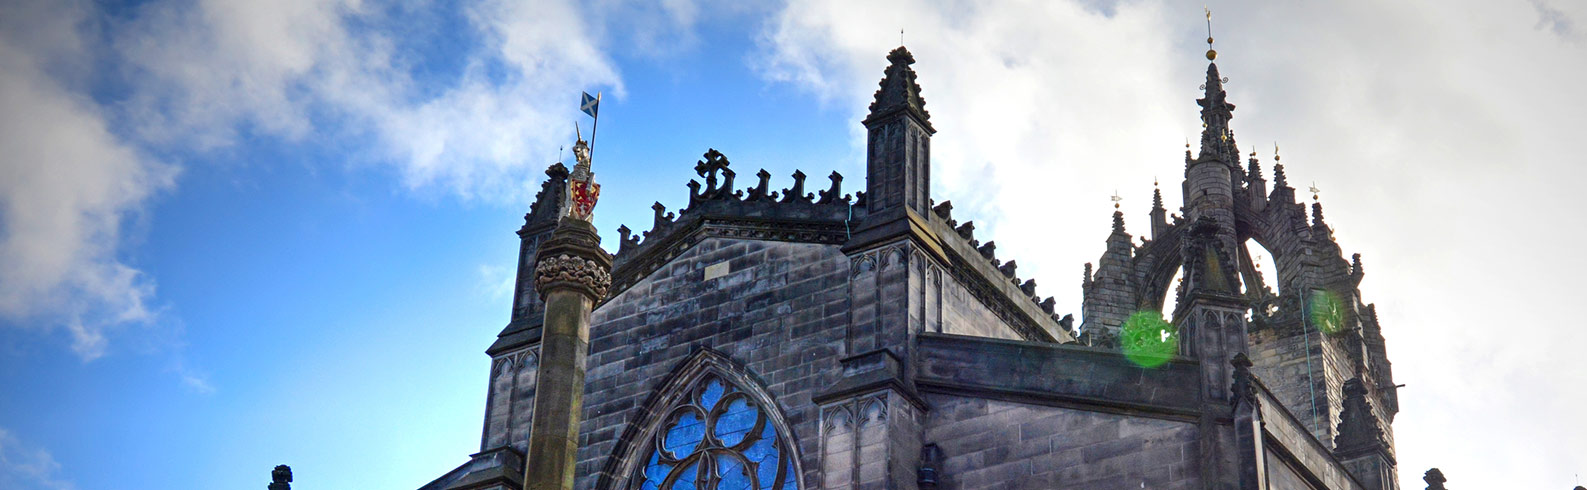 St Giles cathedral and the clouded sky above